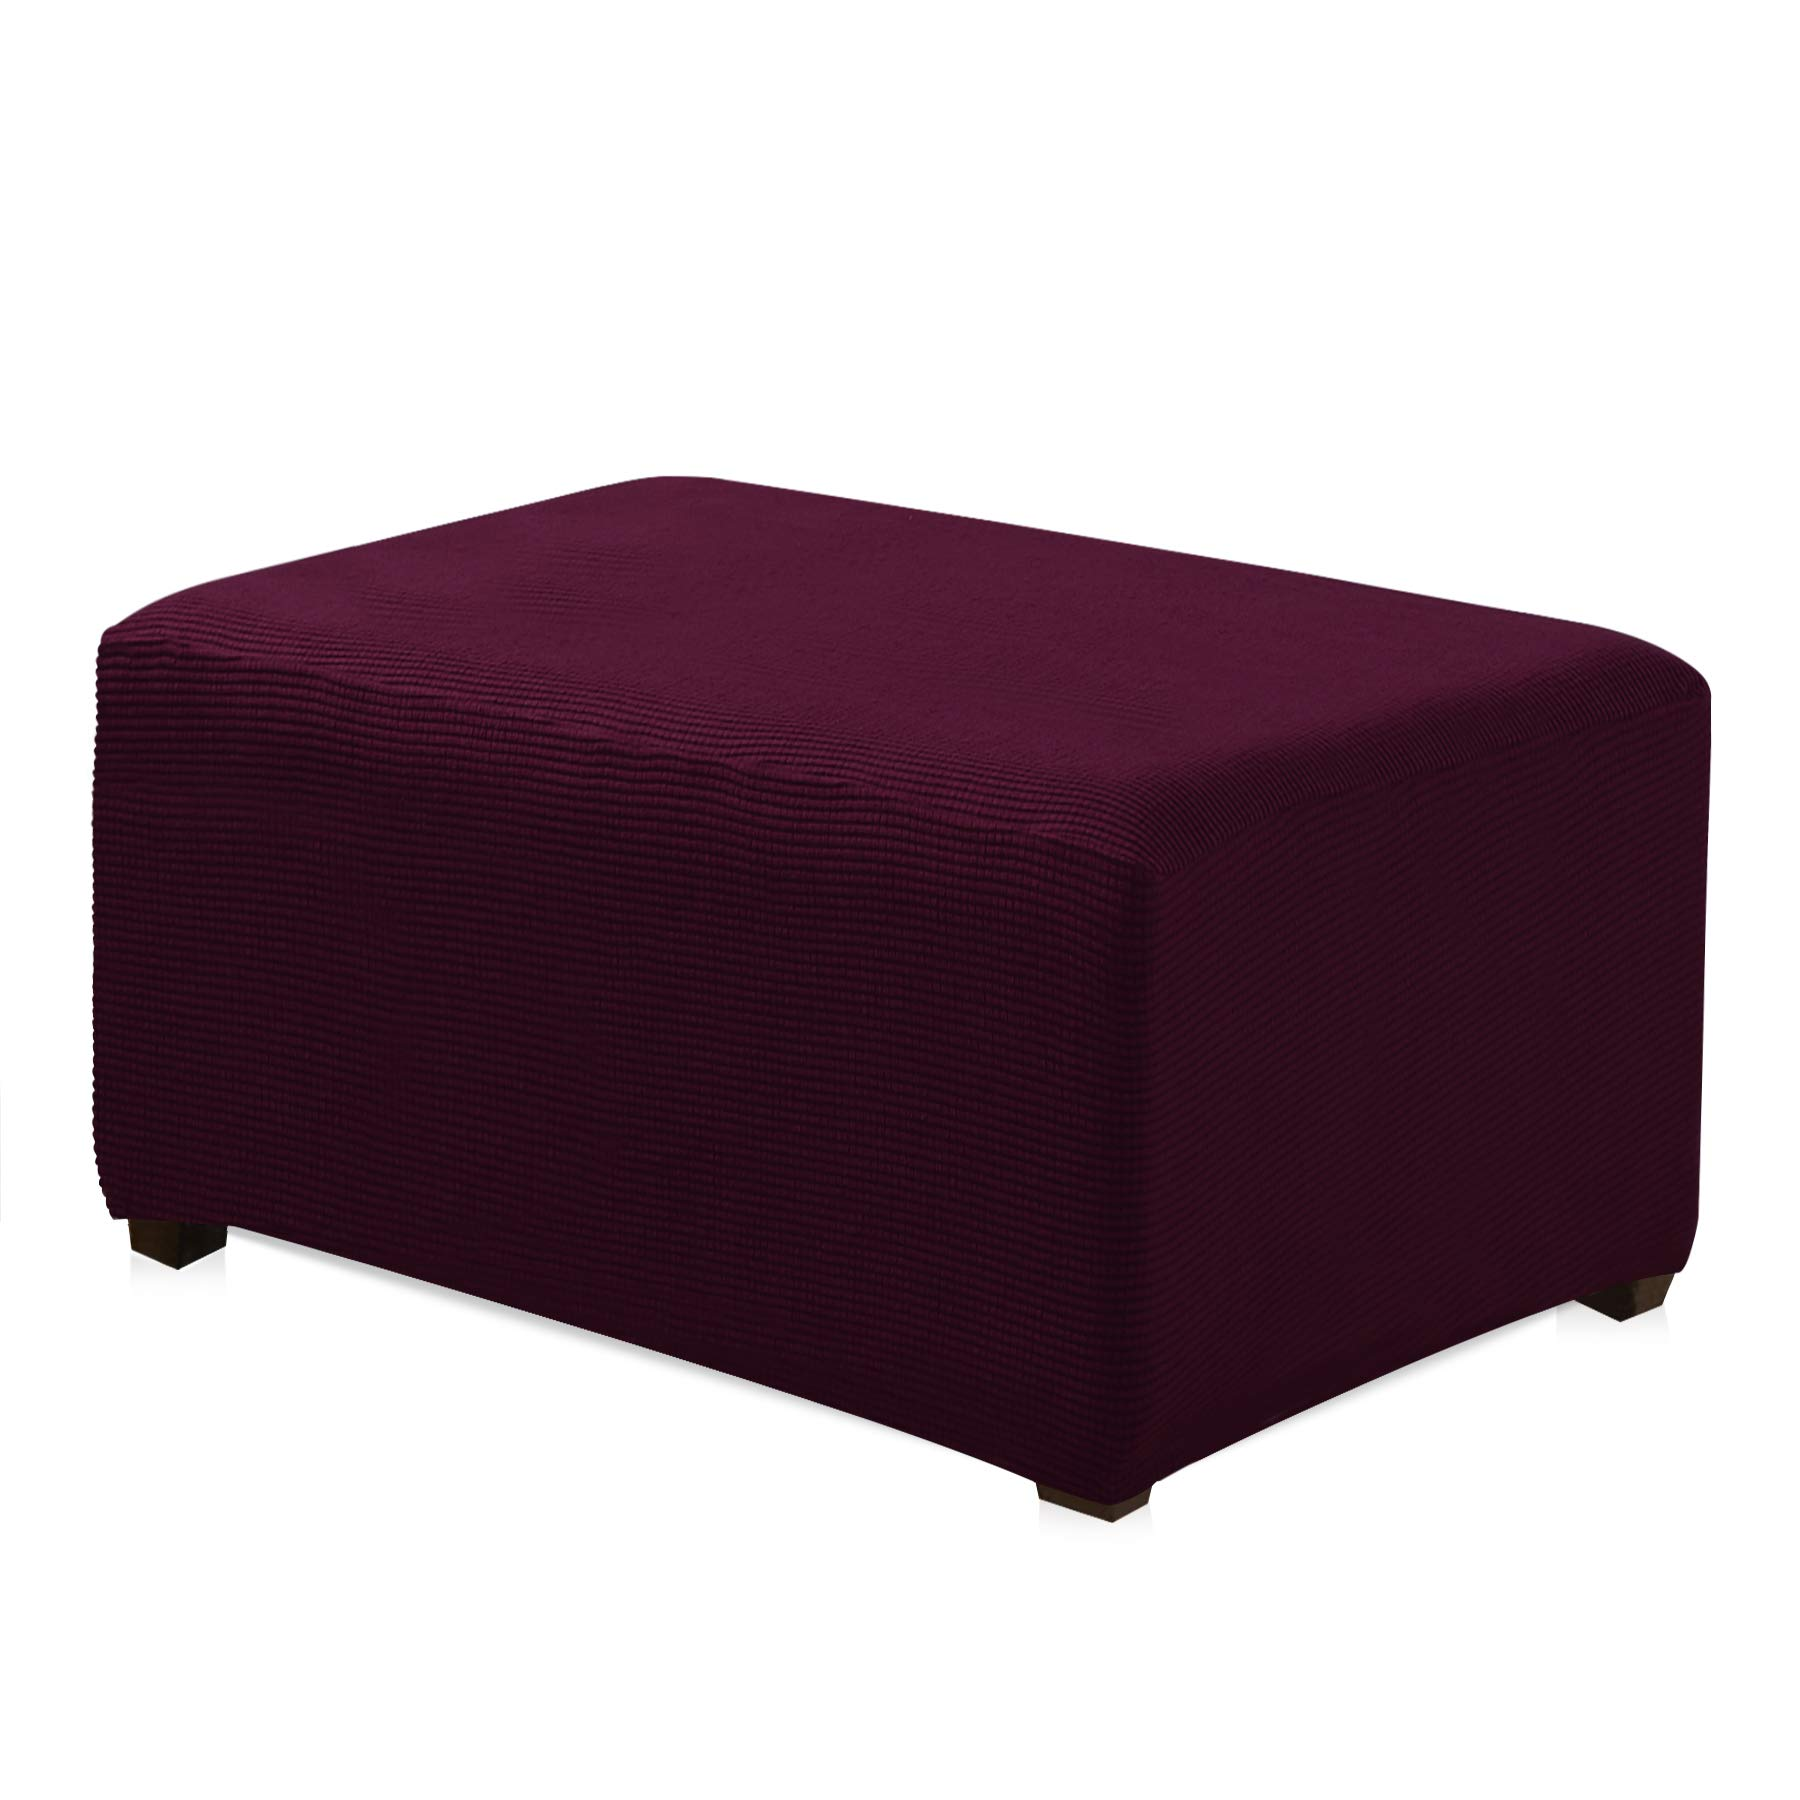 CHUN YI Jacquard Polyester Stretch Fabric Oversized Ottoman Slipcover for Living Room (Oversize, Dark Magenta)